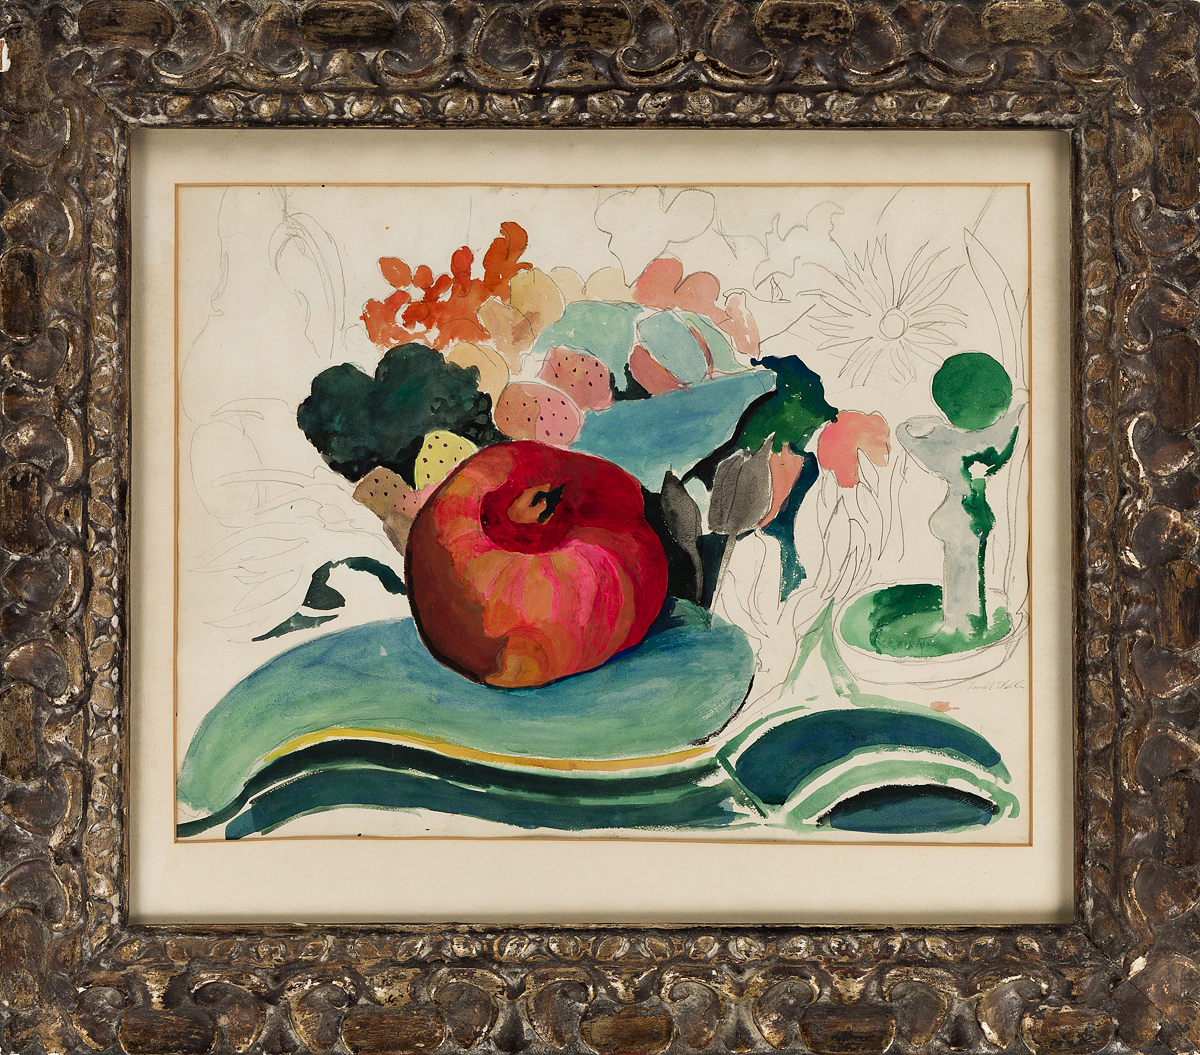 JOSEPH-STELLA-Still-Life-with-a-Pomegranate-and-Flowers